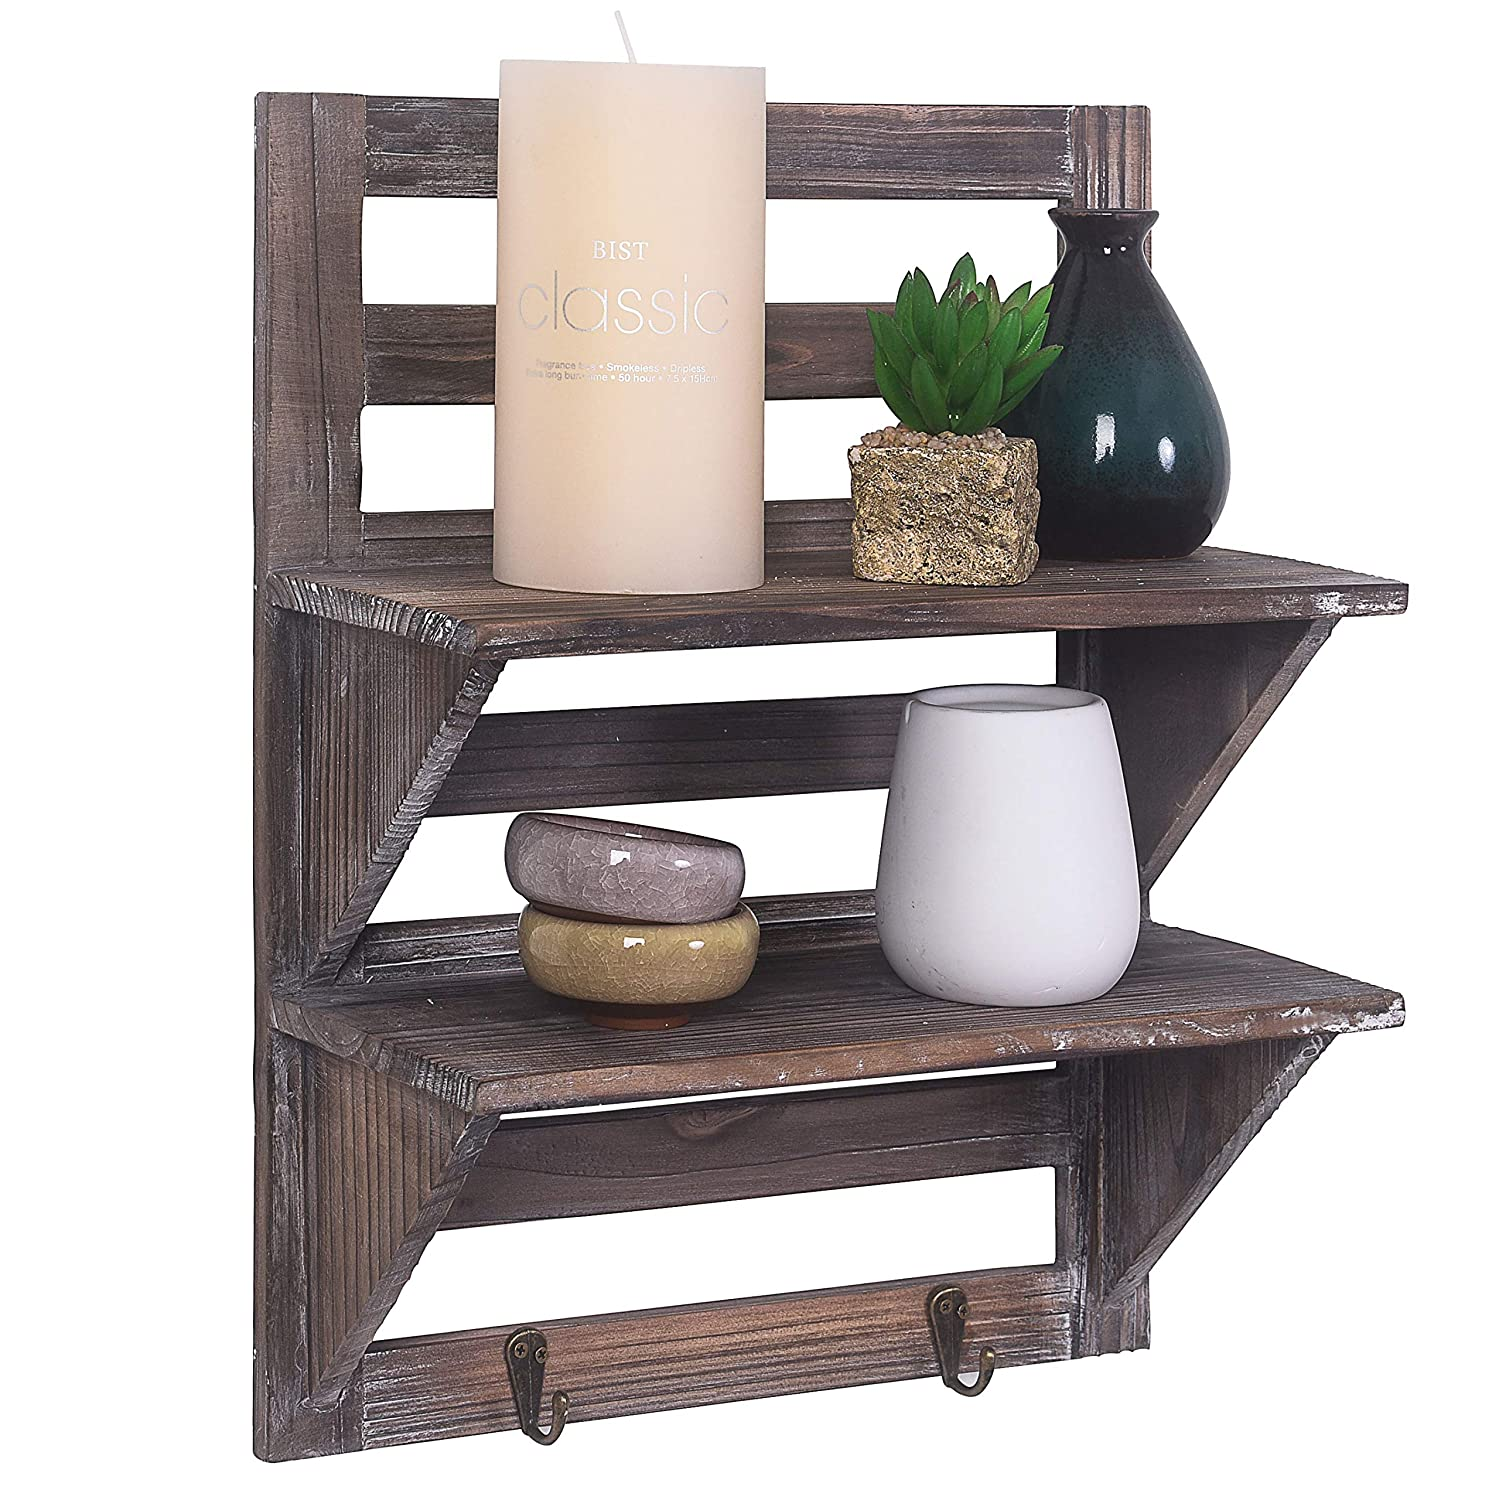 Details About Rhf Rustic Shelves Bathroom Shelf Over Toilet Wood Wall Mounted Shelves For